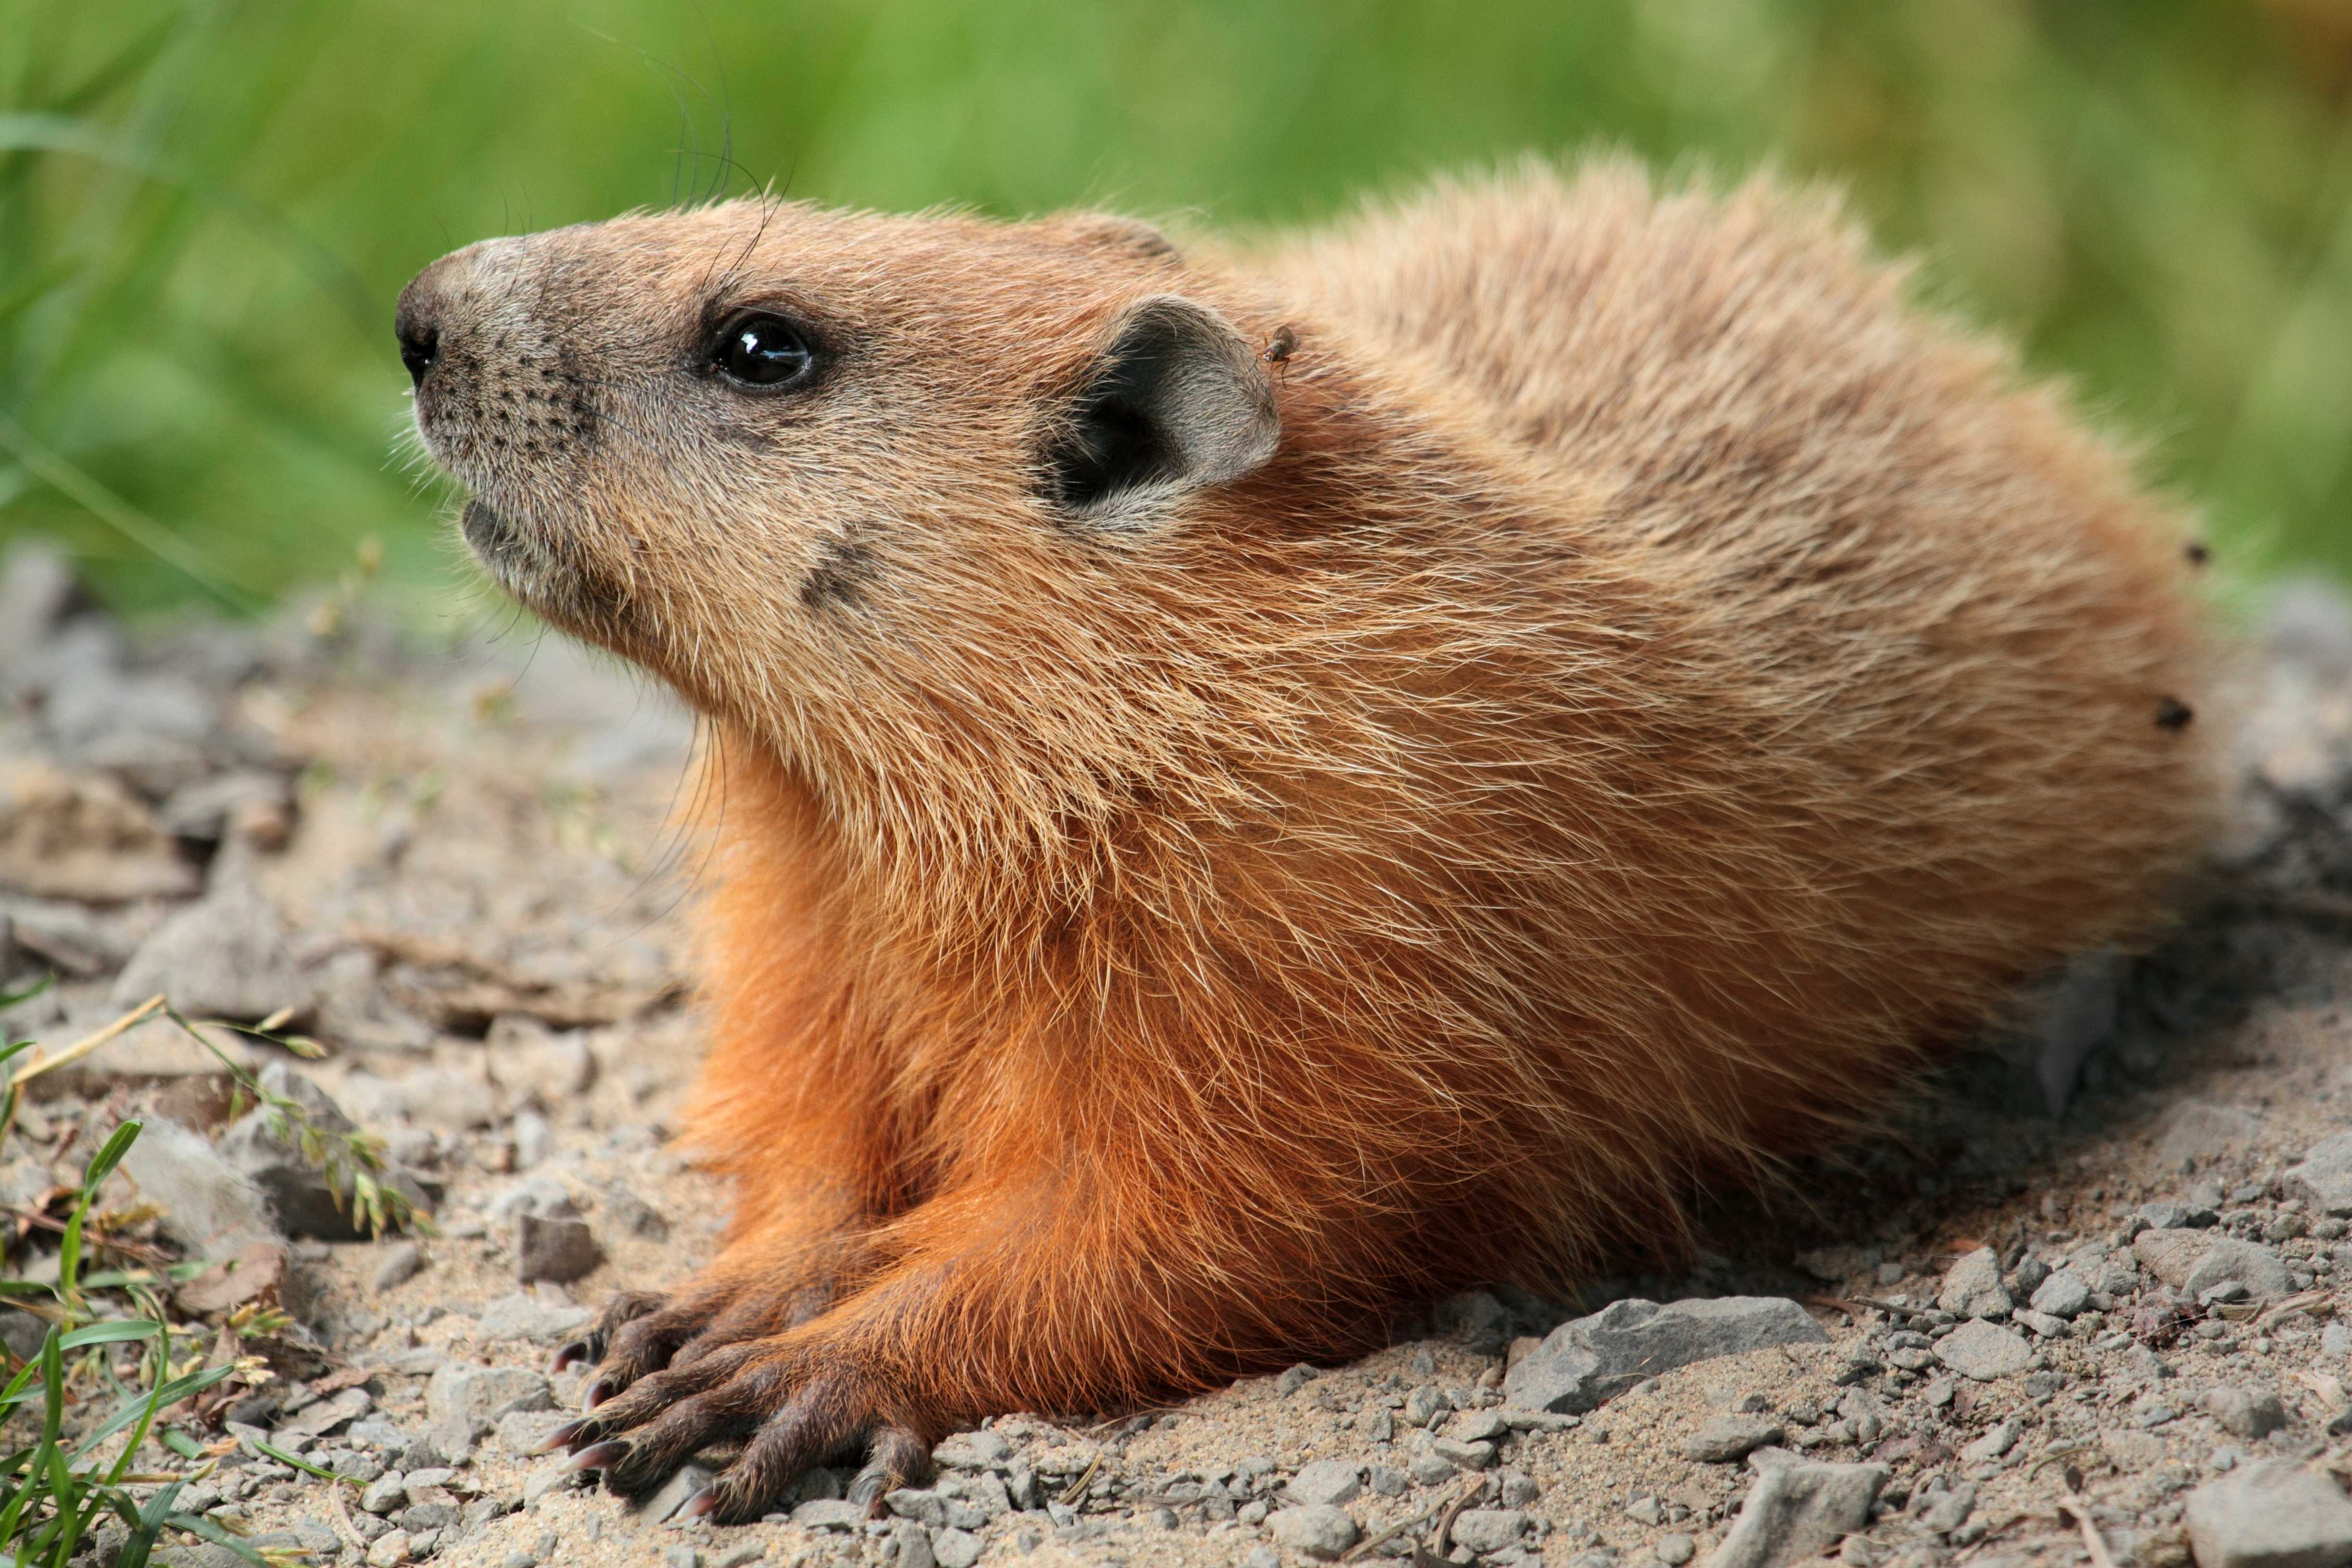 Six more weeks of winter, and a look back at why a groundhog tells us so